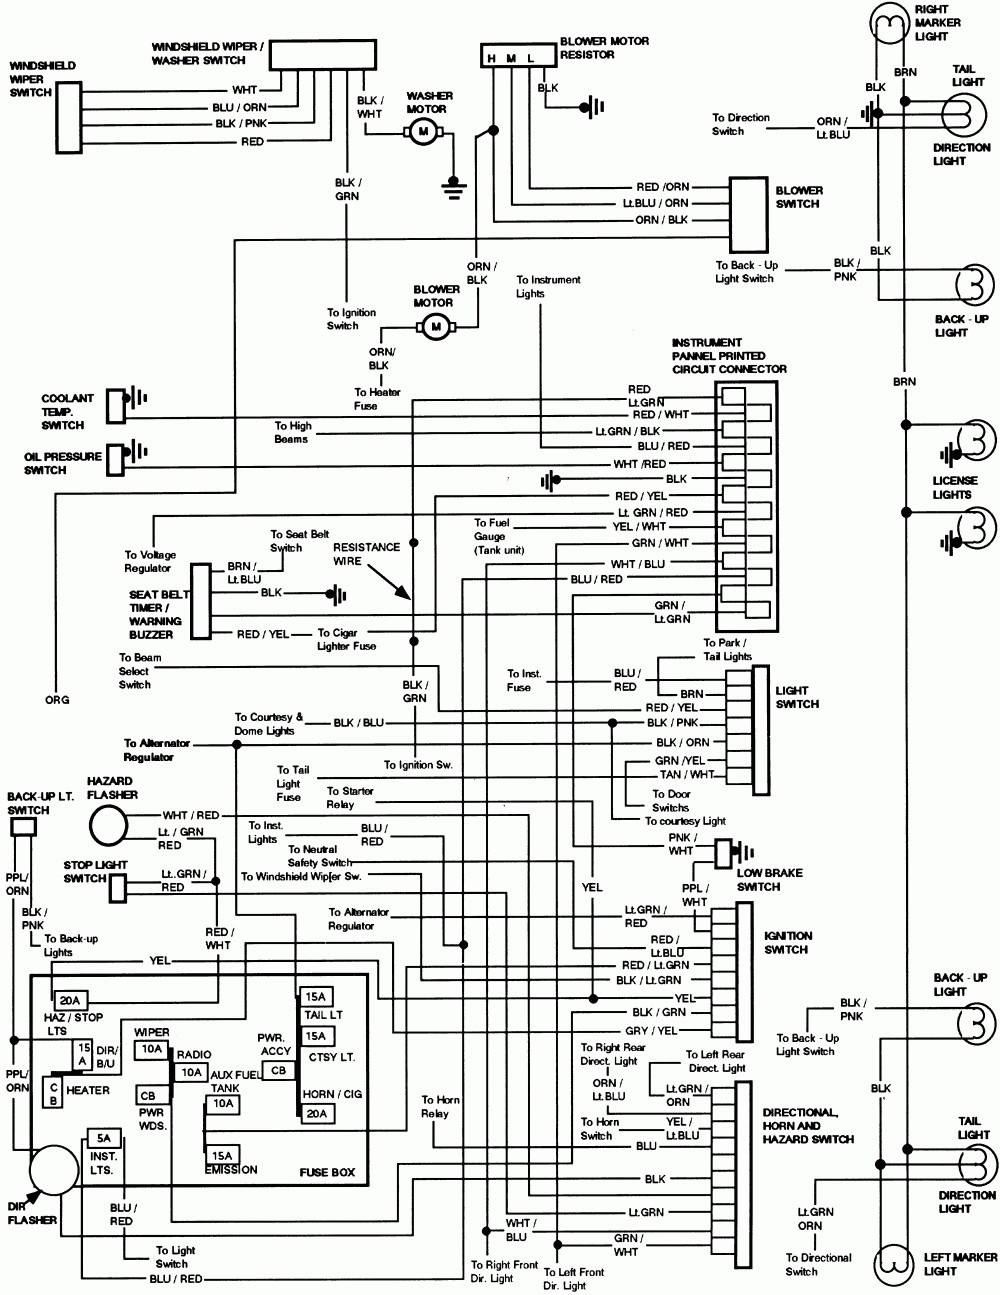 medium resolution of ford f 350 wiring wiring diagram1983 ford f 350 wiring harness free download wiring diagram loadford